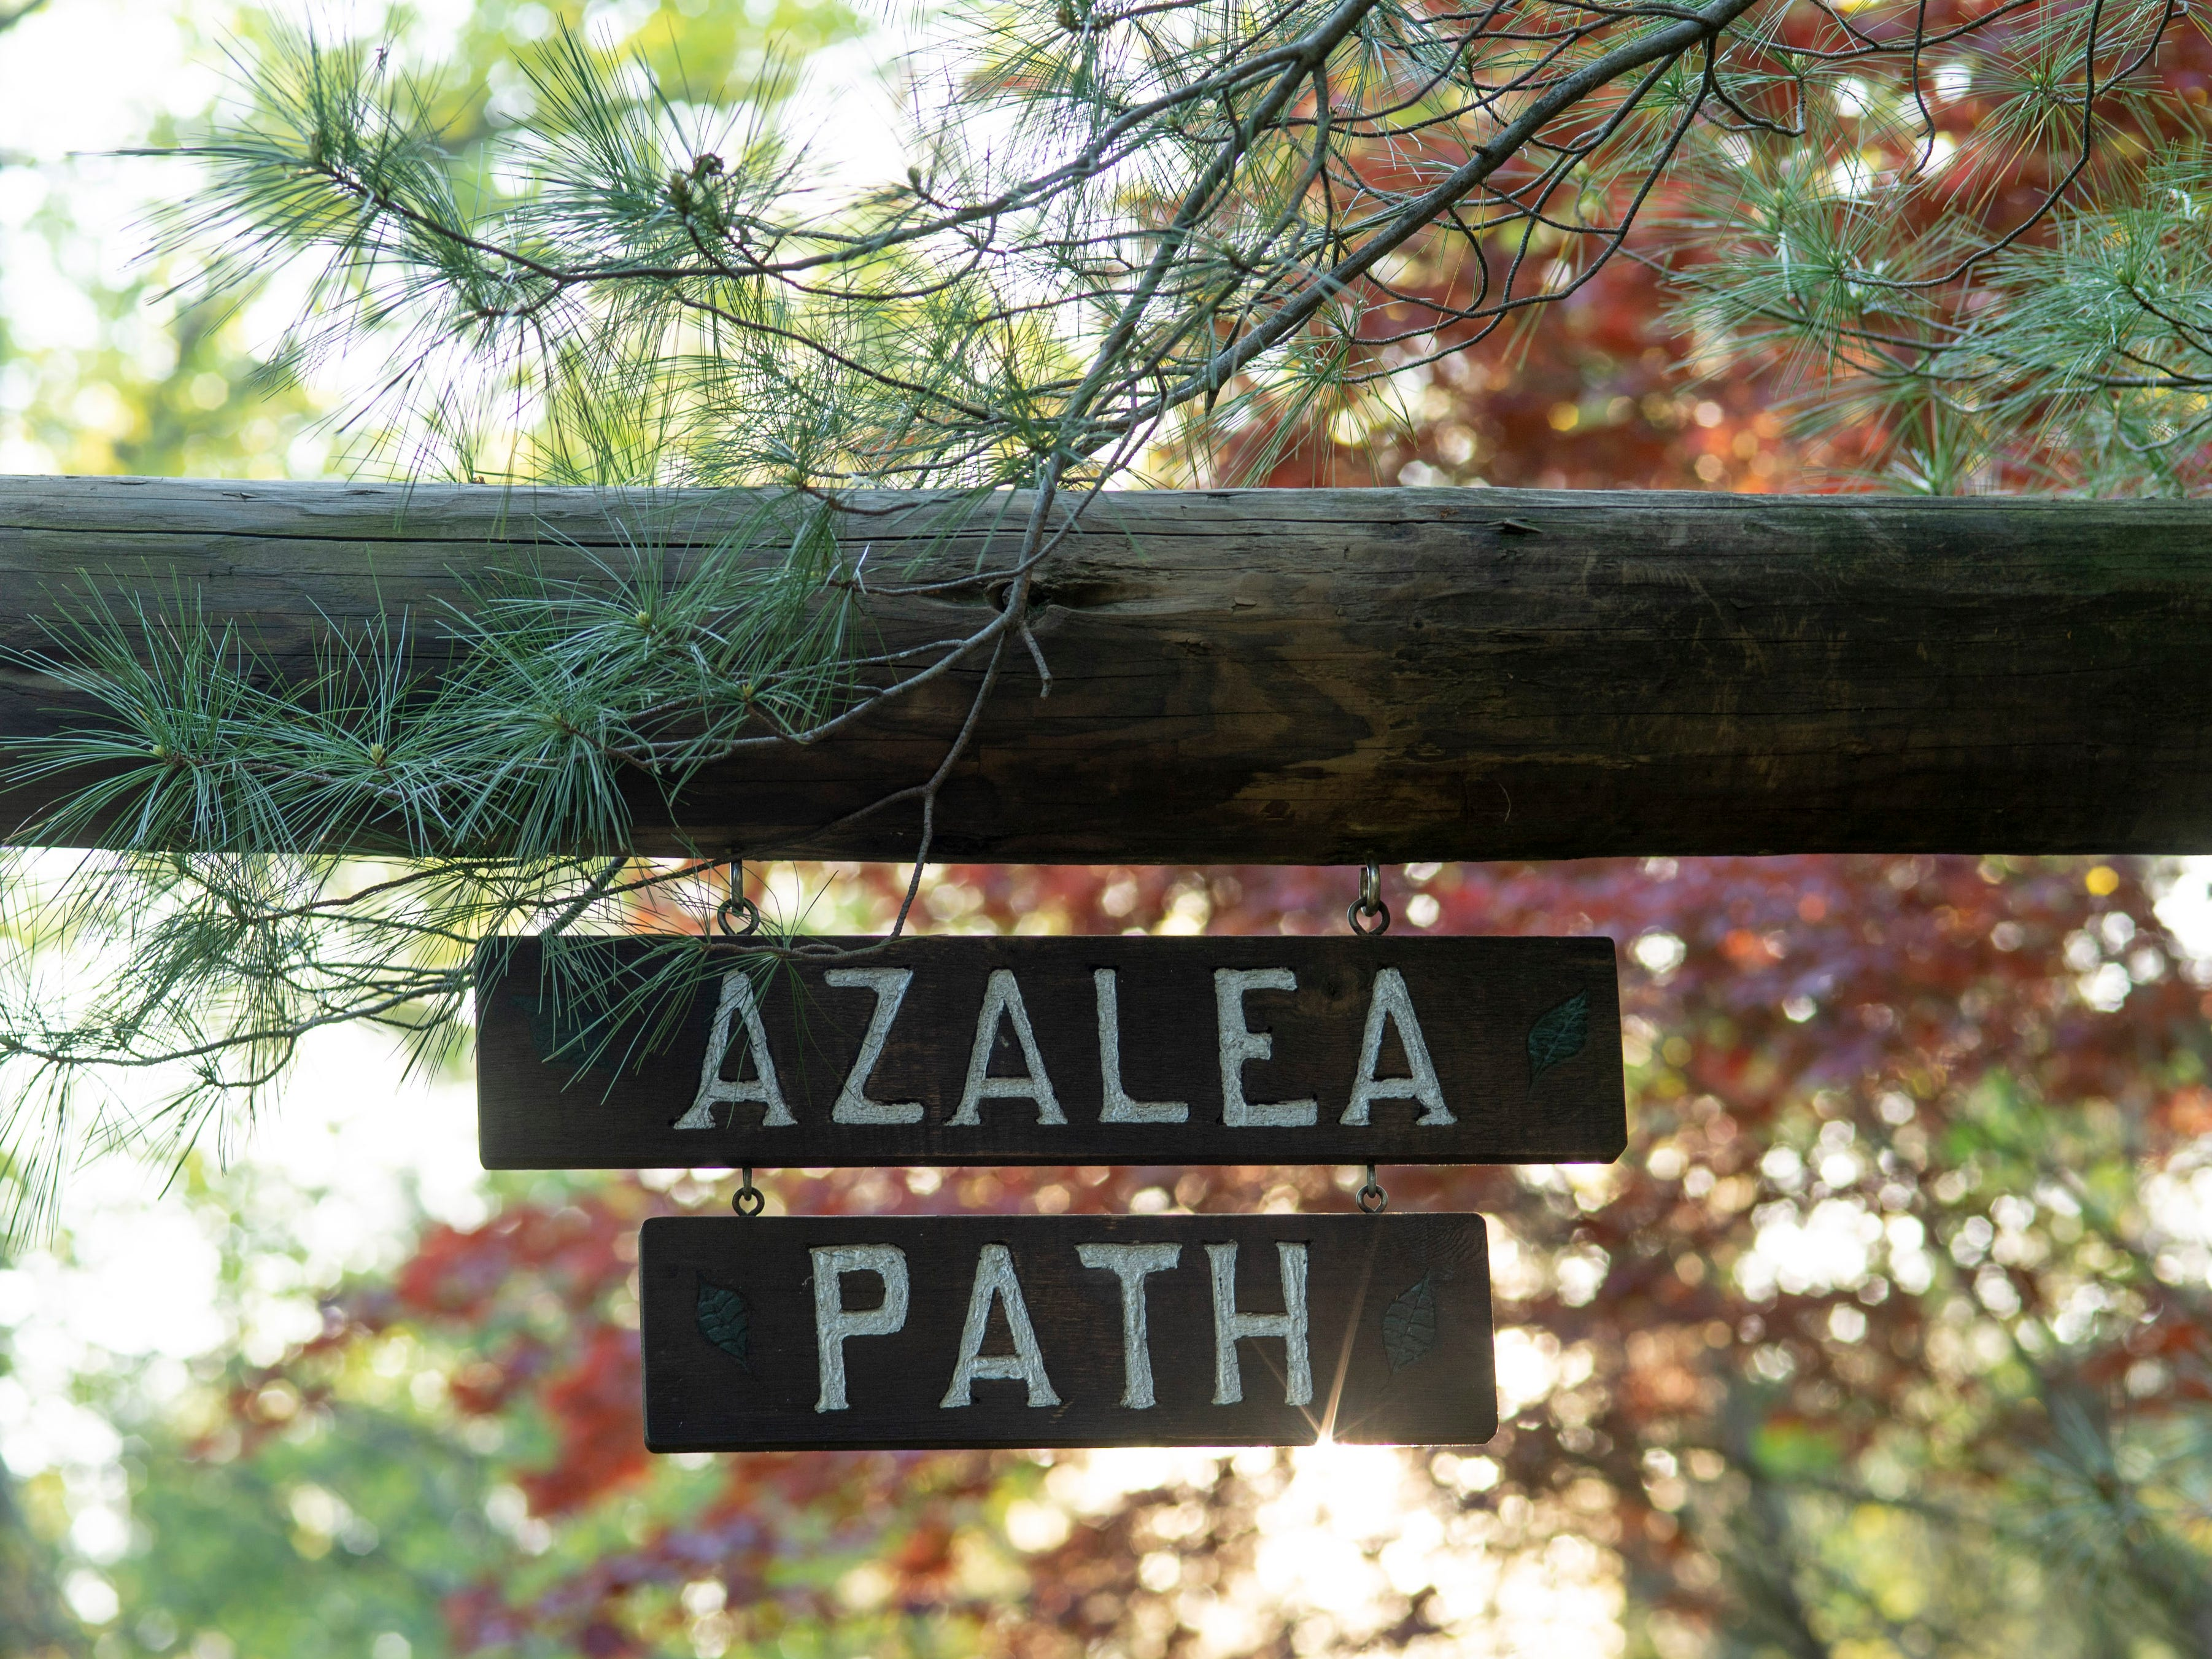 The Azalea Path Arboretum and Botanical Gardens was started by Beverly Knight in 1979 on 15 acres and has grown to more than 60 acres and has about 500 varieties of the flower.